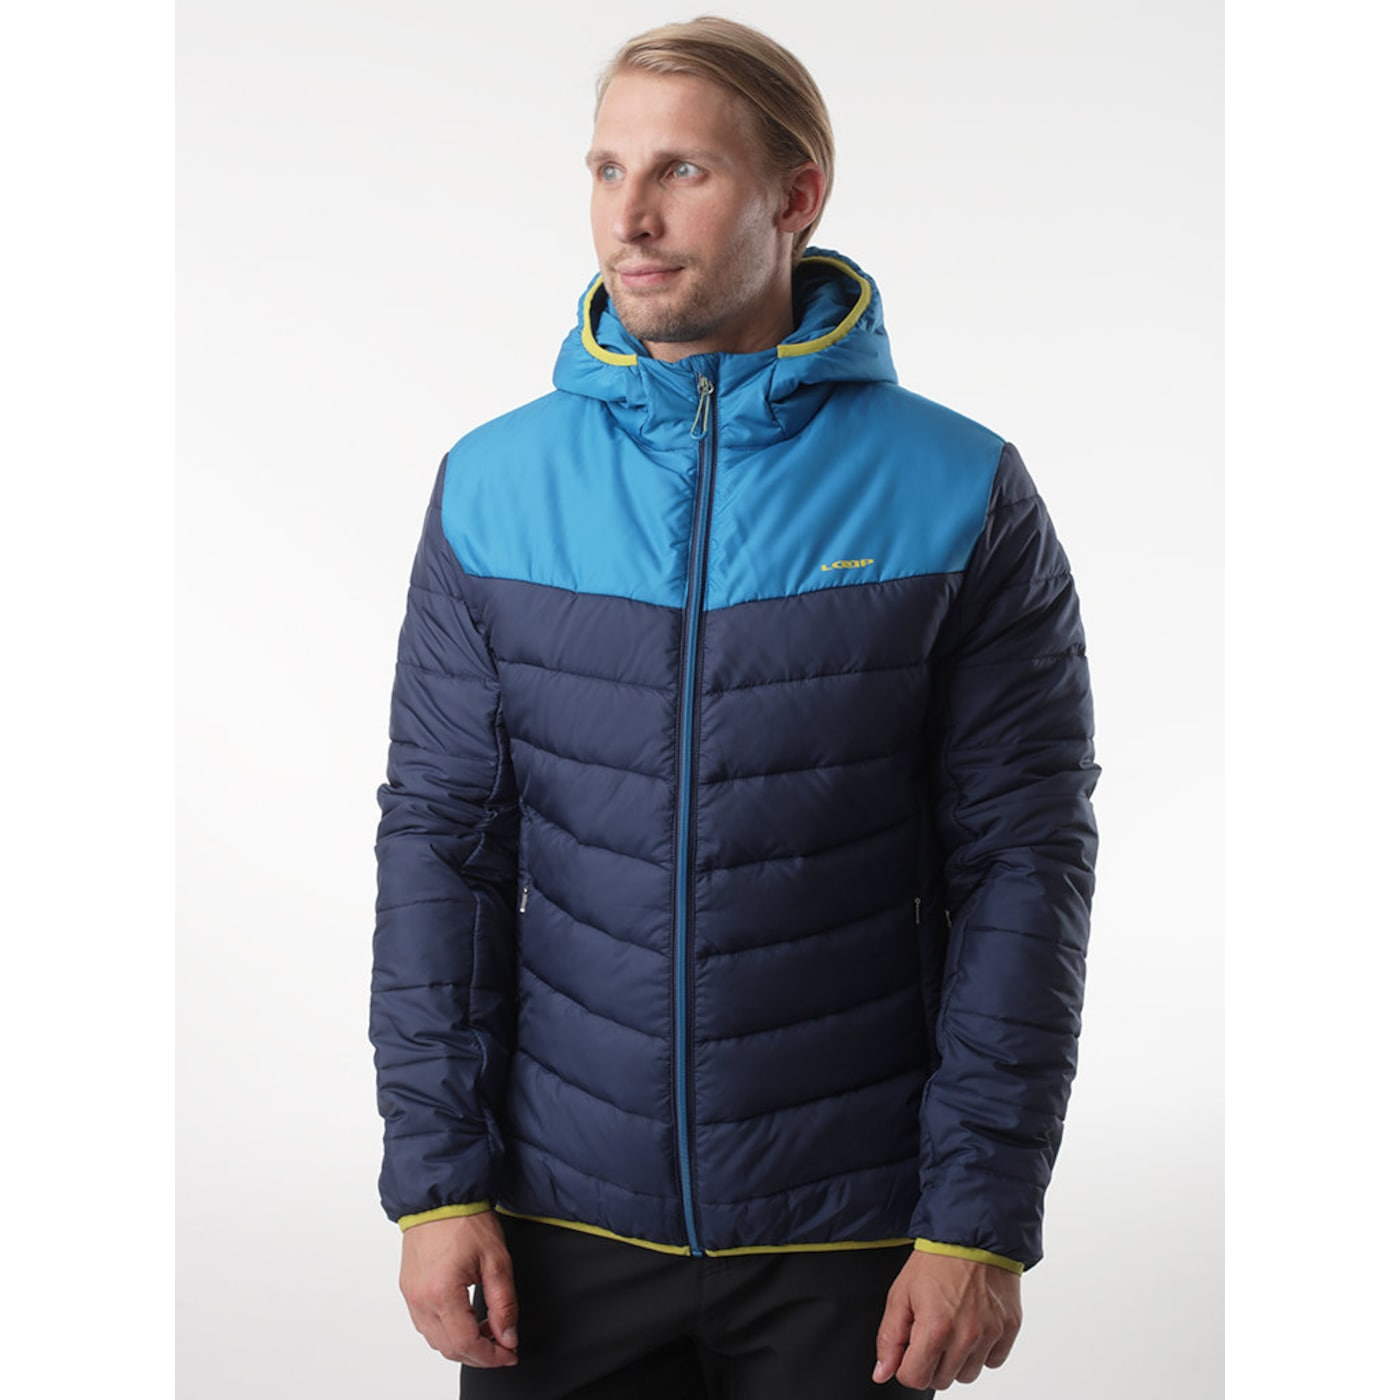 IRIS men's winter jacket for the city blue